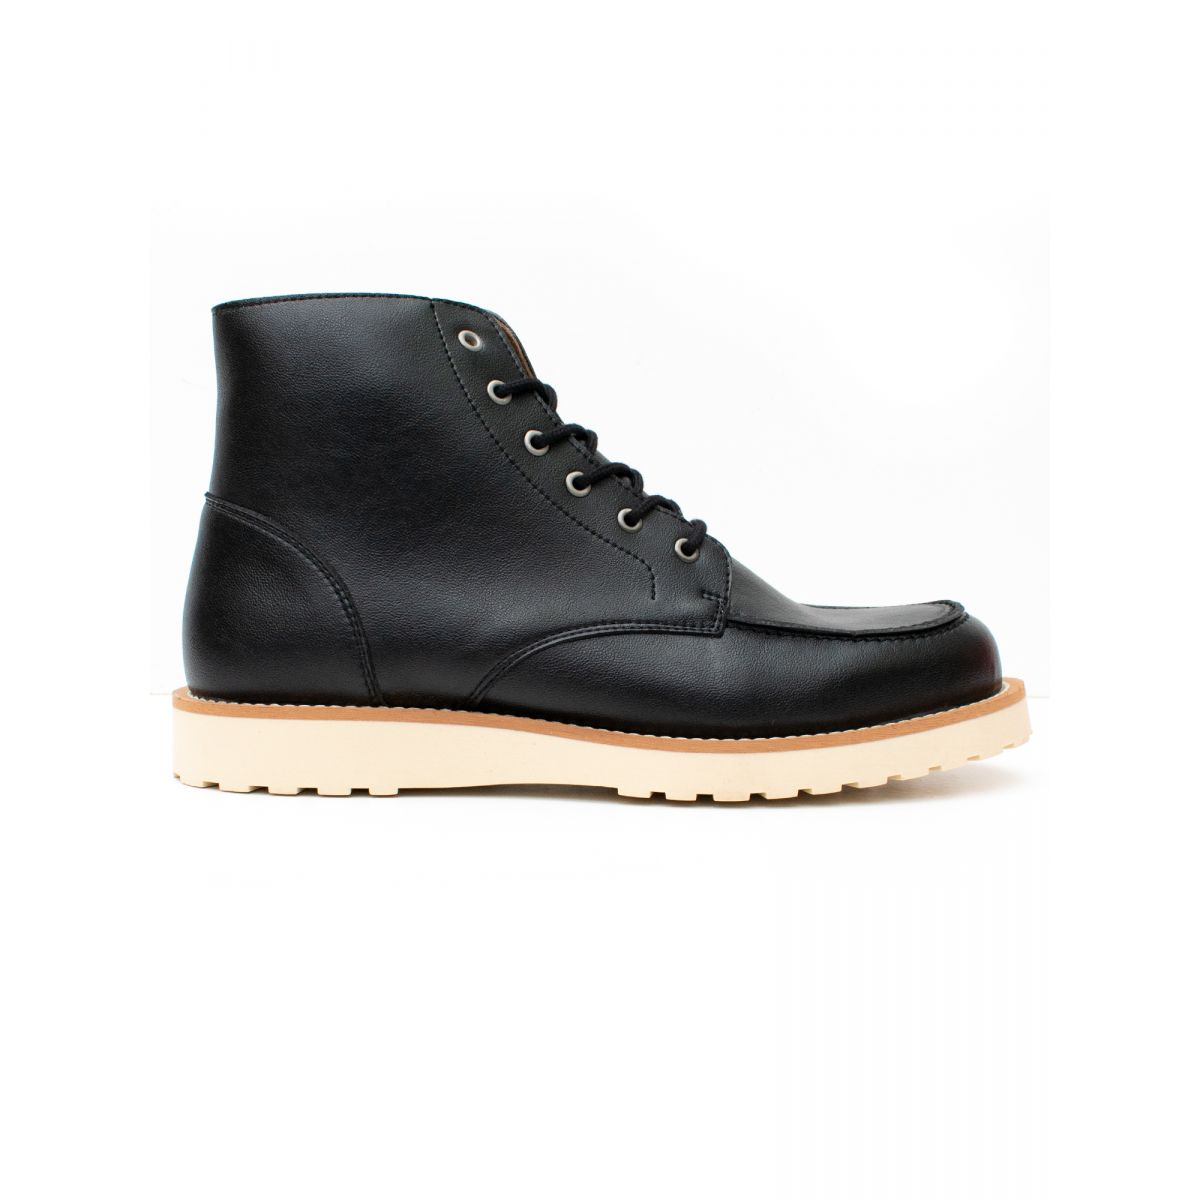 Low Rig Boots from EN&